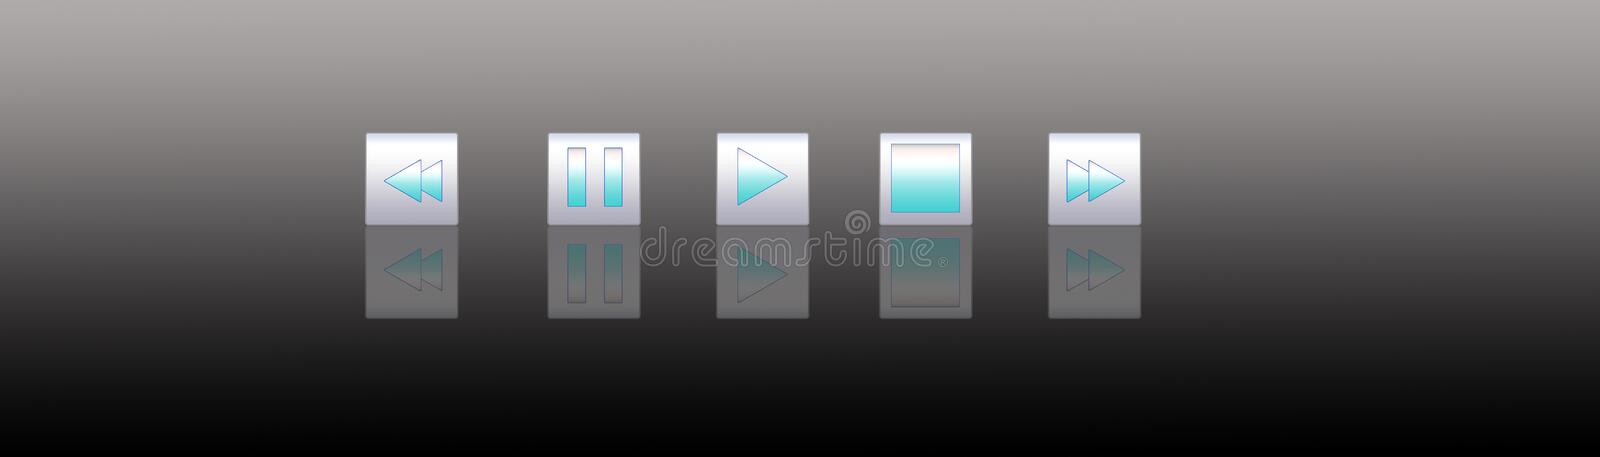 Media player buttons 5 royalty free illustration